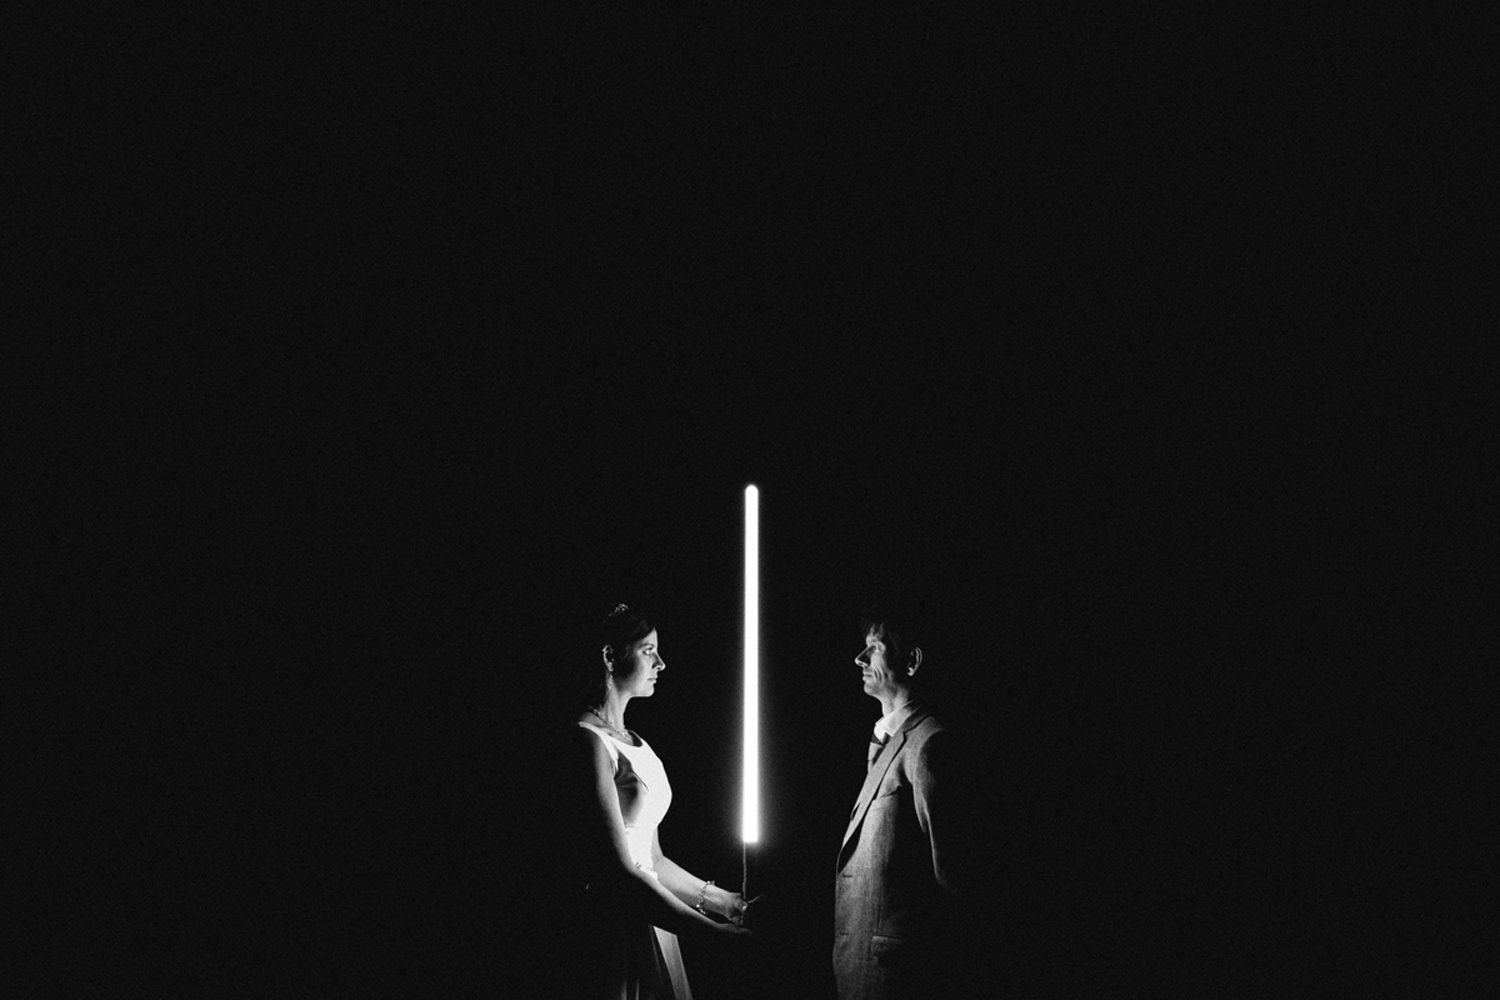 bride and groom pose with light saber in the dark